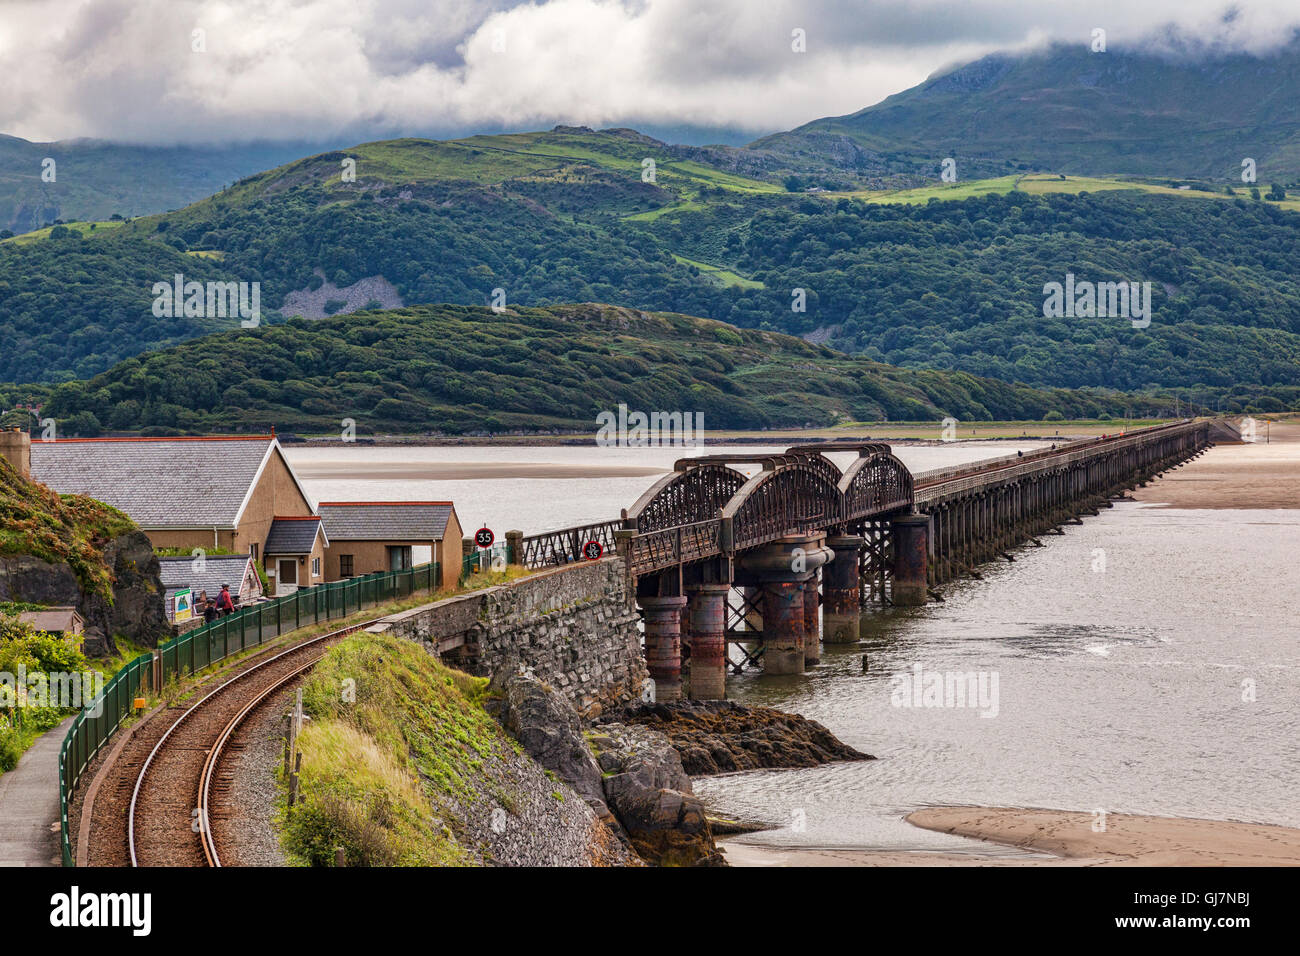 Barmouth Viaduct and the River Mawddach, Gwynedd, Wales, UK - Stock Image